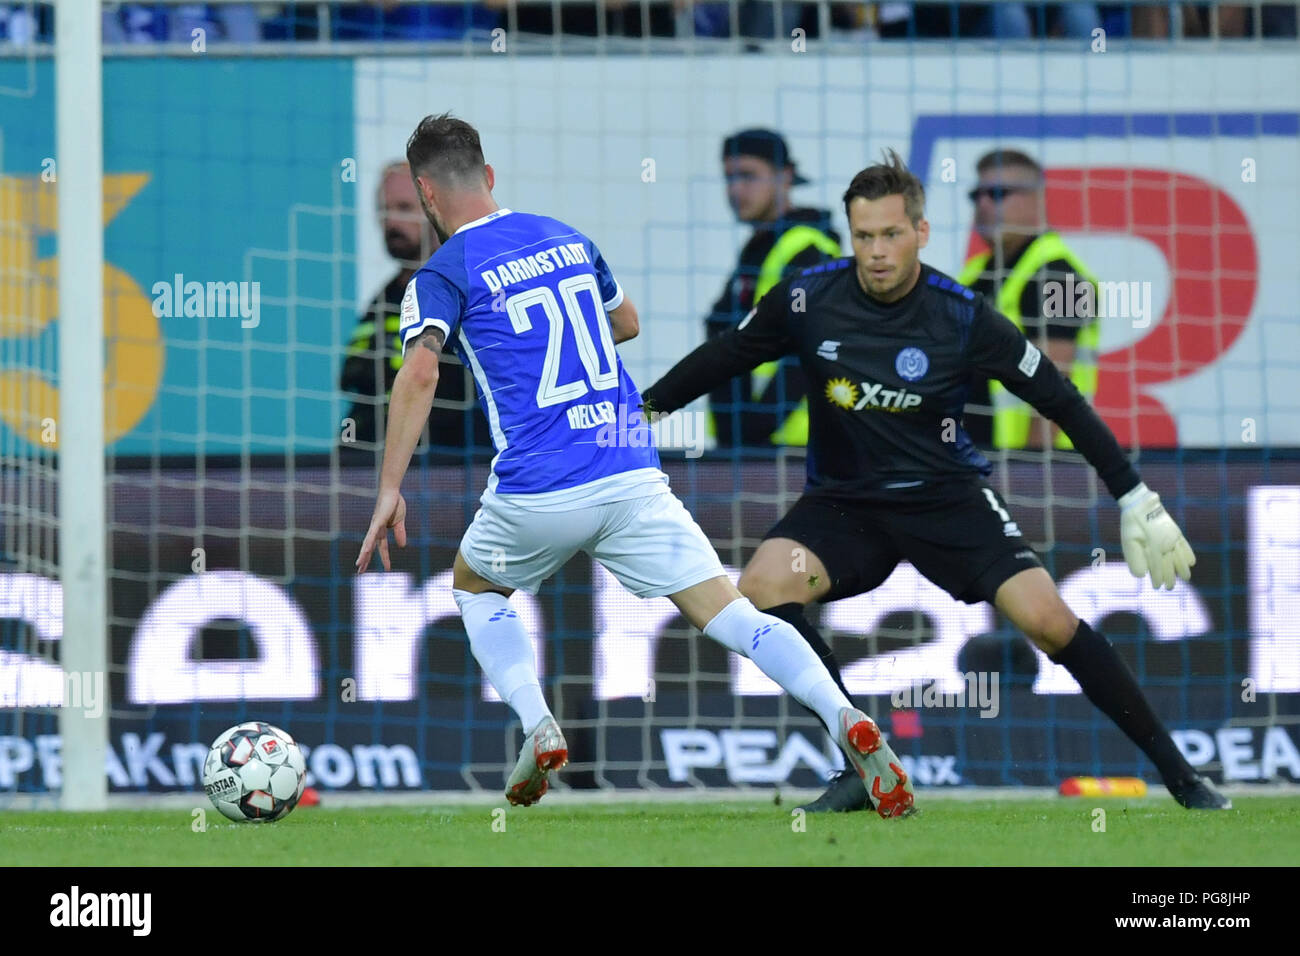 Darmstadt, Germany. 24th Aug, 2018. Soccer, 2nd Bundesliga, Darmstadt 98 vs MSV Duisburg, 3rd Matchday, at the Merck Stadium at Boellenfalltor. Darmstadt's Marcel Heller (front) approaches Duisburg's goalkeeper Daniel Davari and scores the 1-0 goal moments later. Credit: Uwe Anspach/dpa - IMPORTANT NOTICE: DFL regulations prohibit any use of photographs as image sequences and/or quasi-video./dpa/Alamy Live News - Stock Image